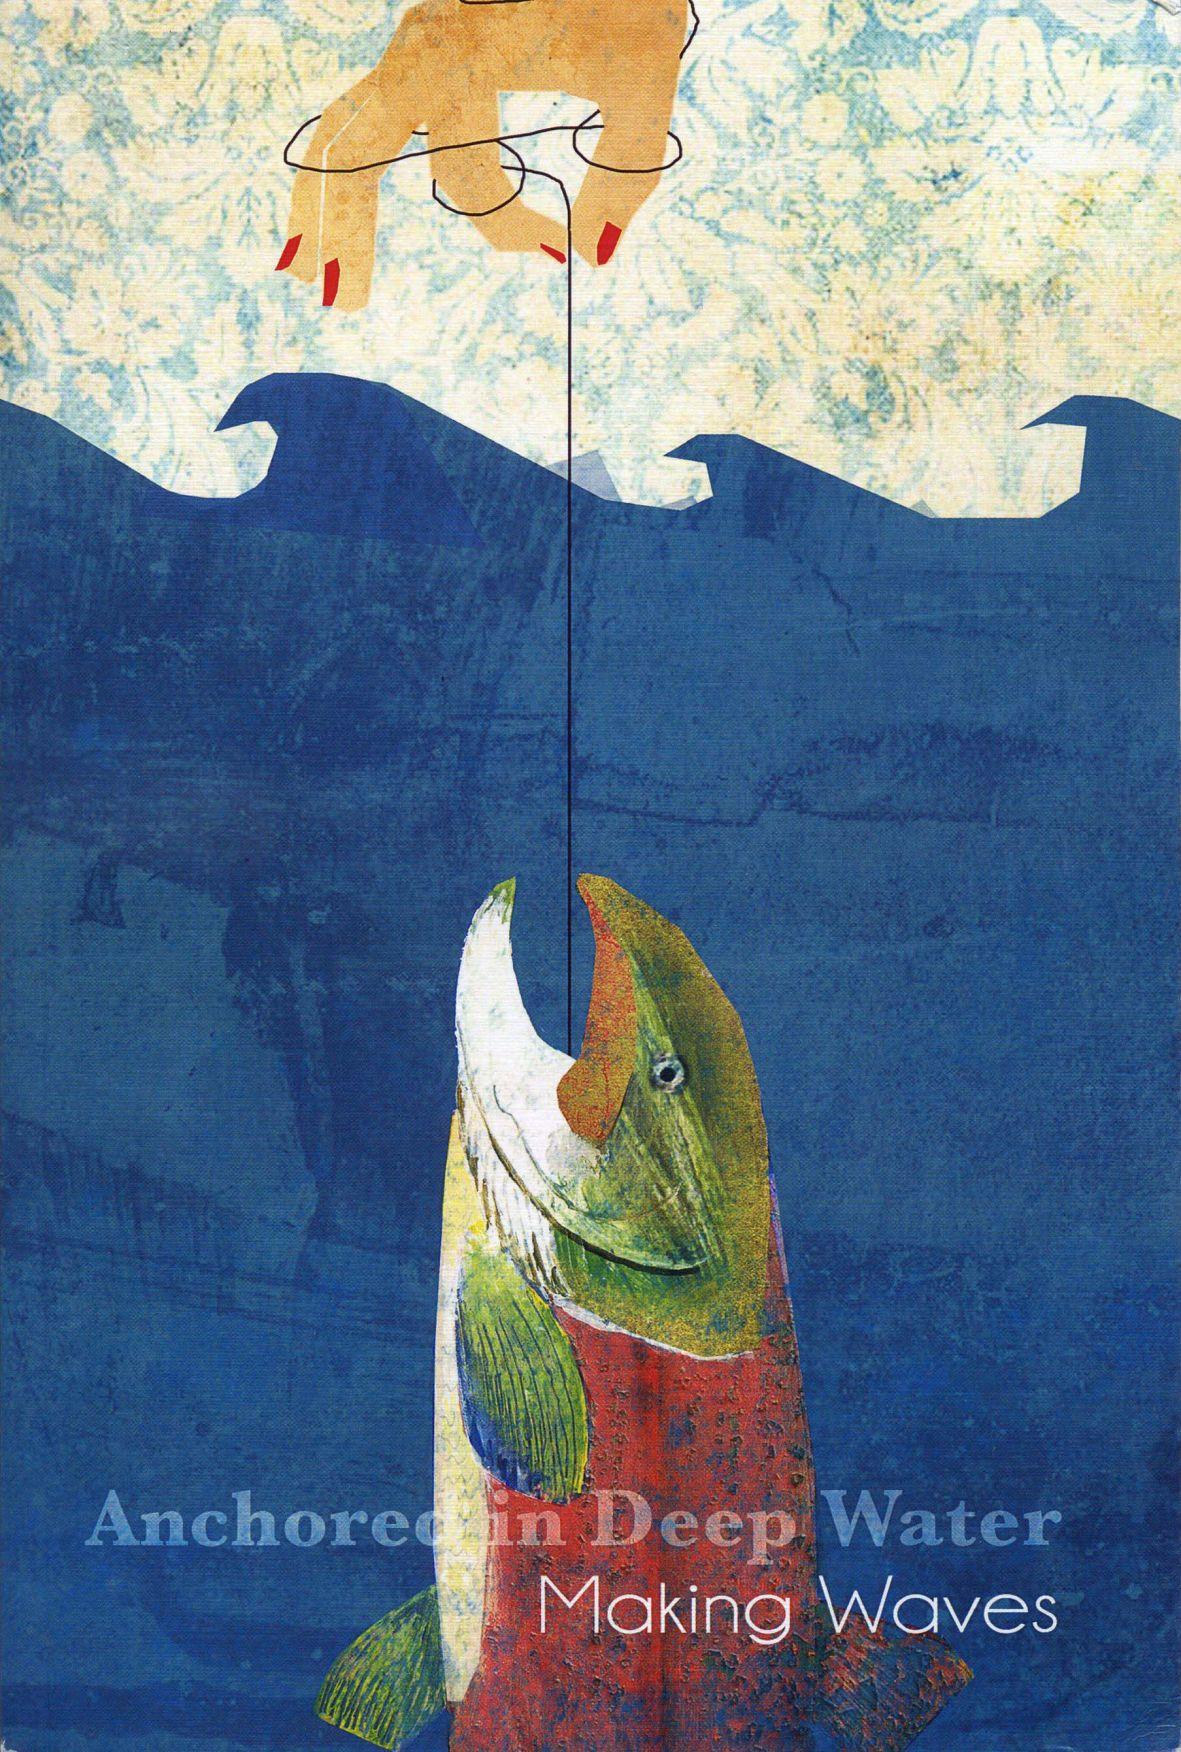 'Anchored in Deep Water' Fisherpoets shine in wake of new anthology